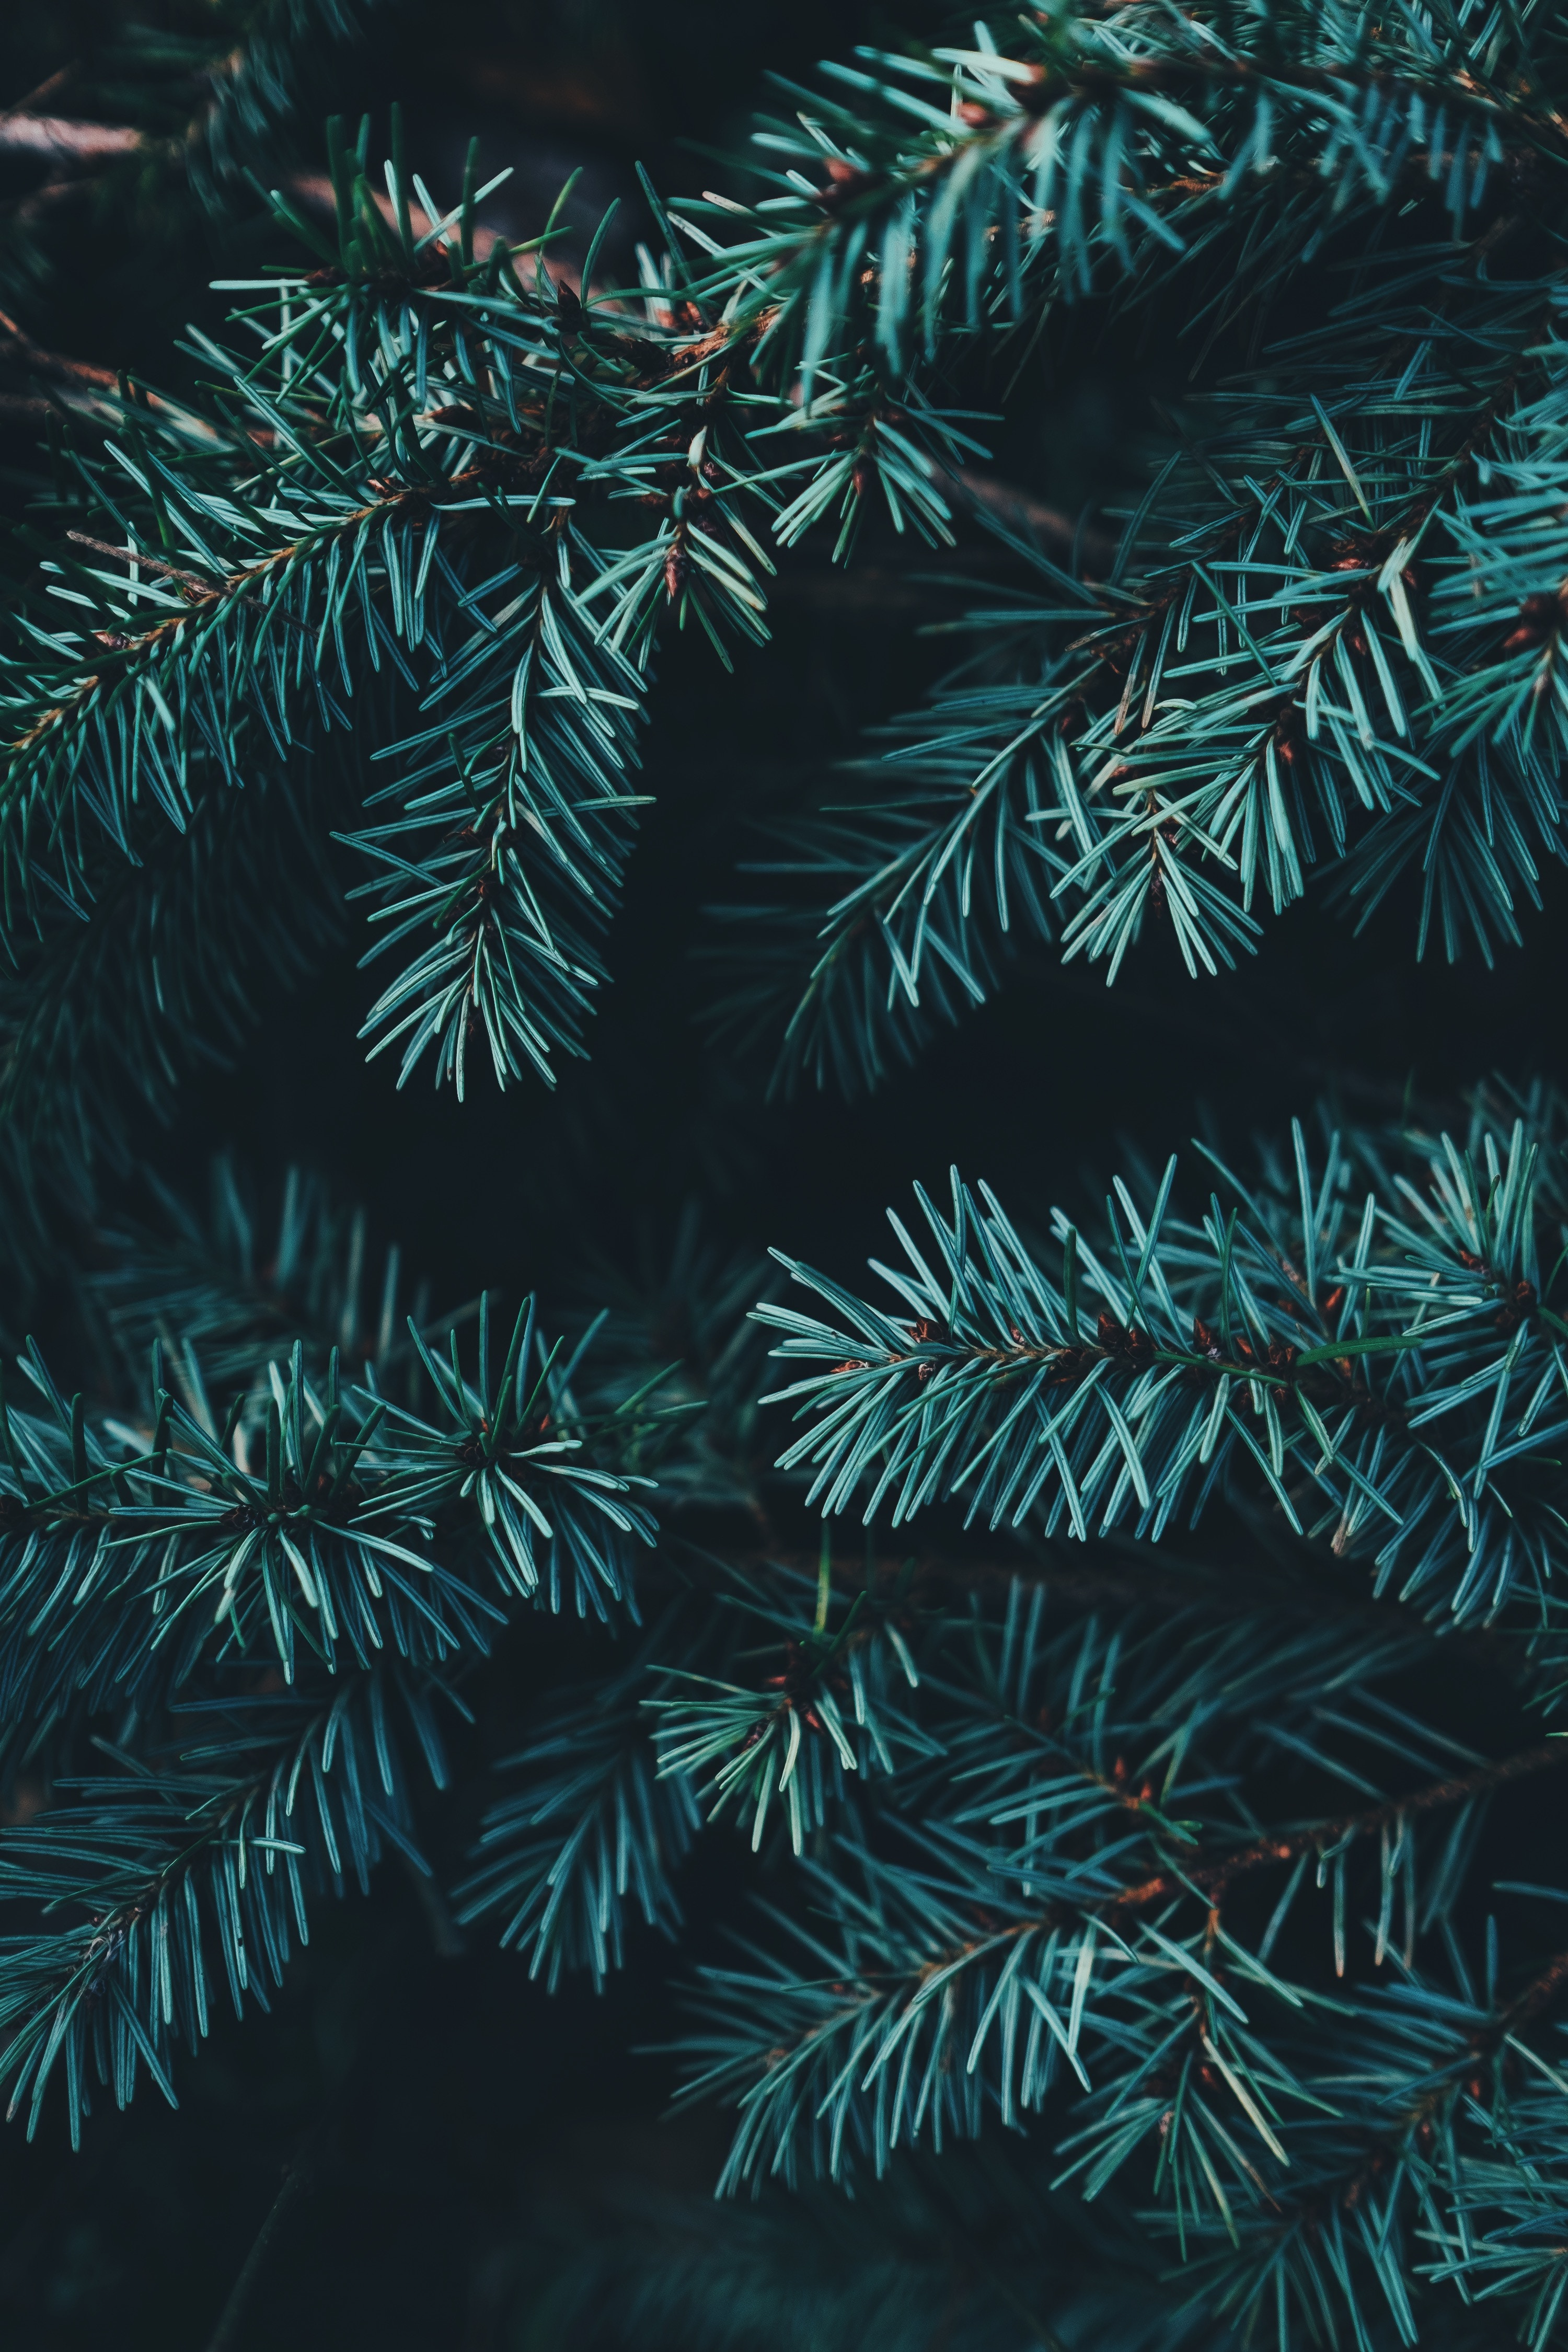 https://unsplash.com/photos/zh7GEuORbUw